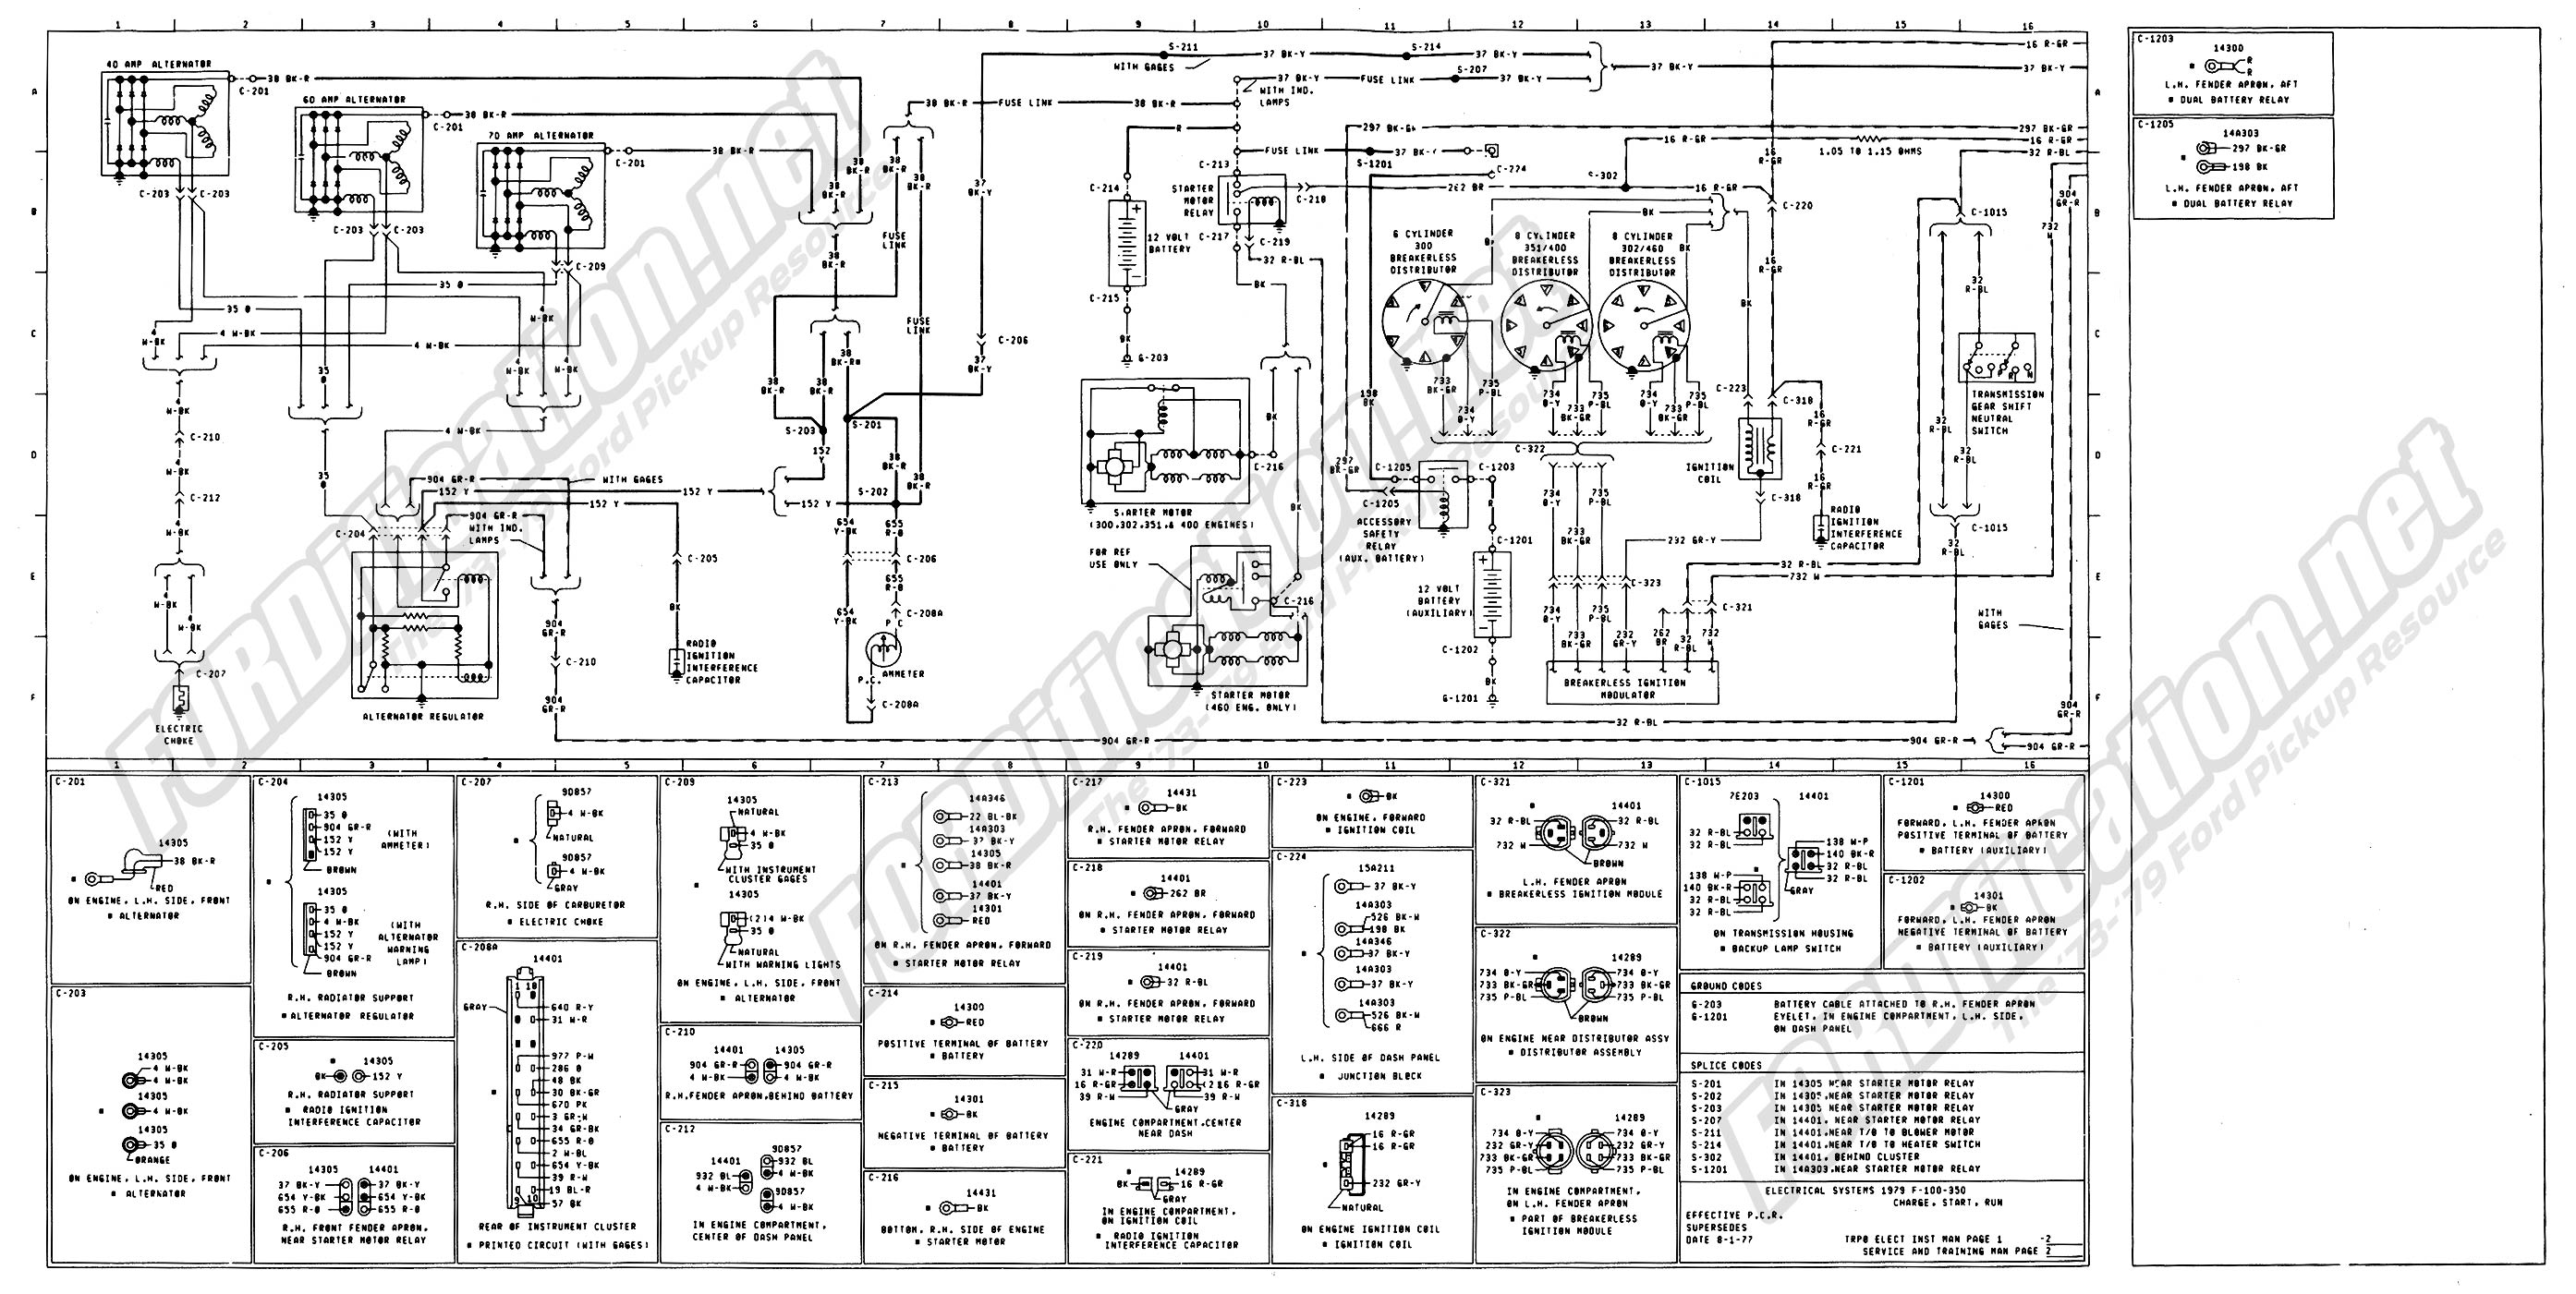 wiring_79master_2of9 1973 1979 ford truck wiring diagrams & schematics fordification net 1975 ford bronco wiring diagram at mr168.co